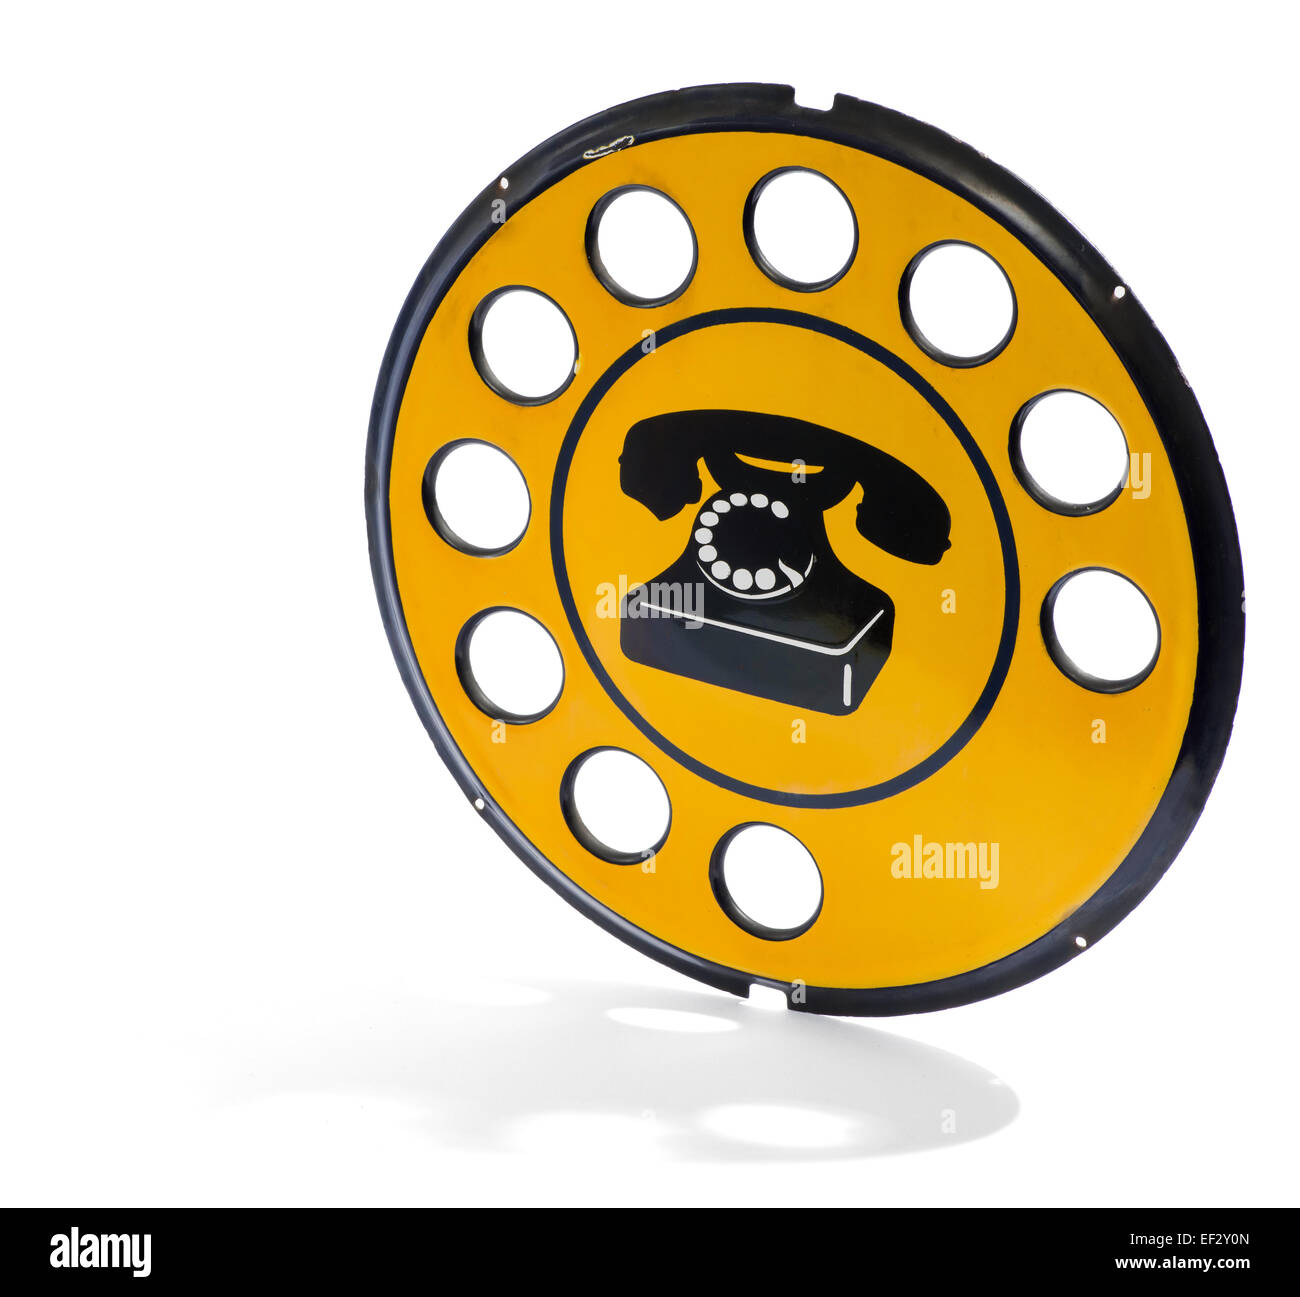 Vintage yellow italian telephone sign - Stock Image